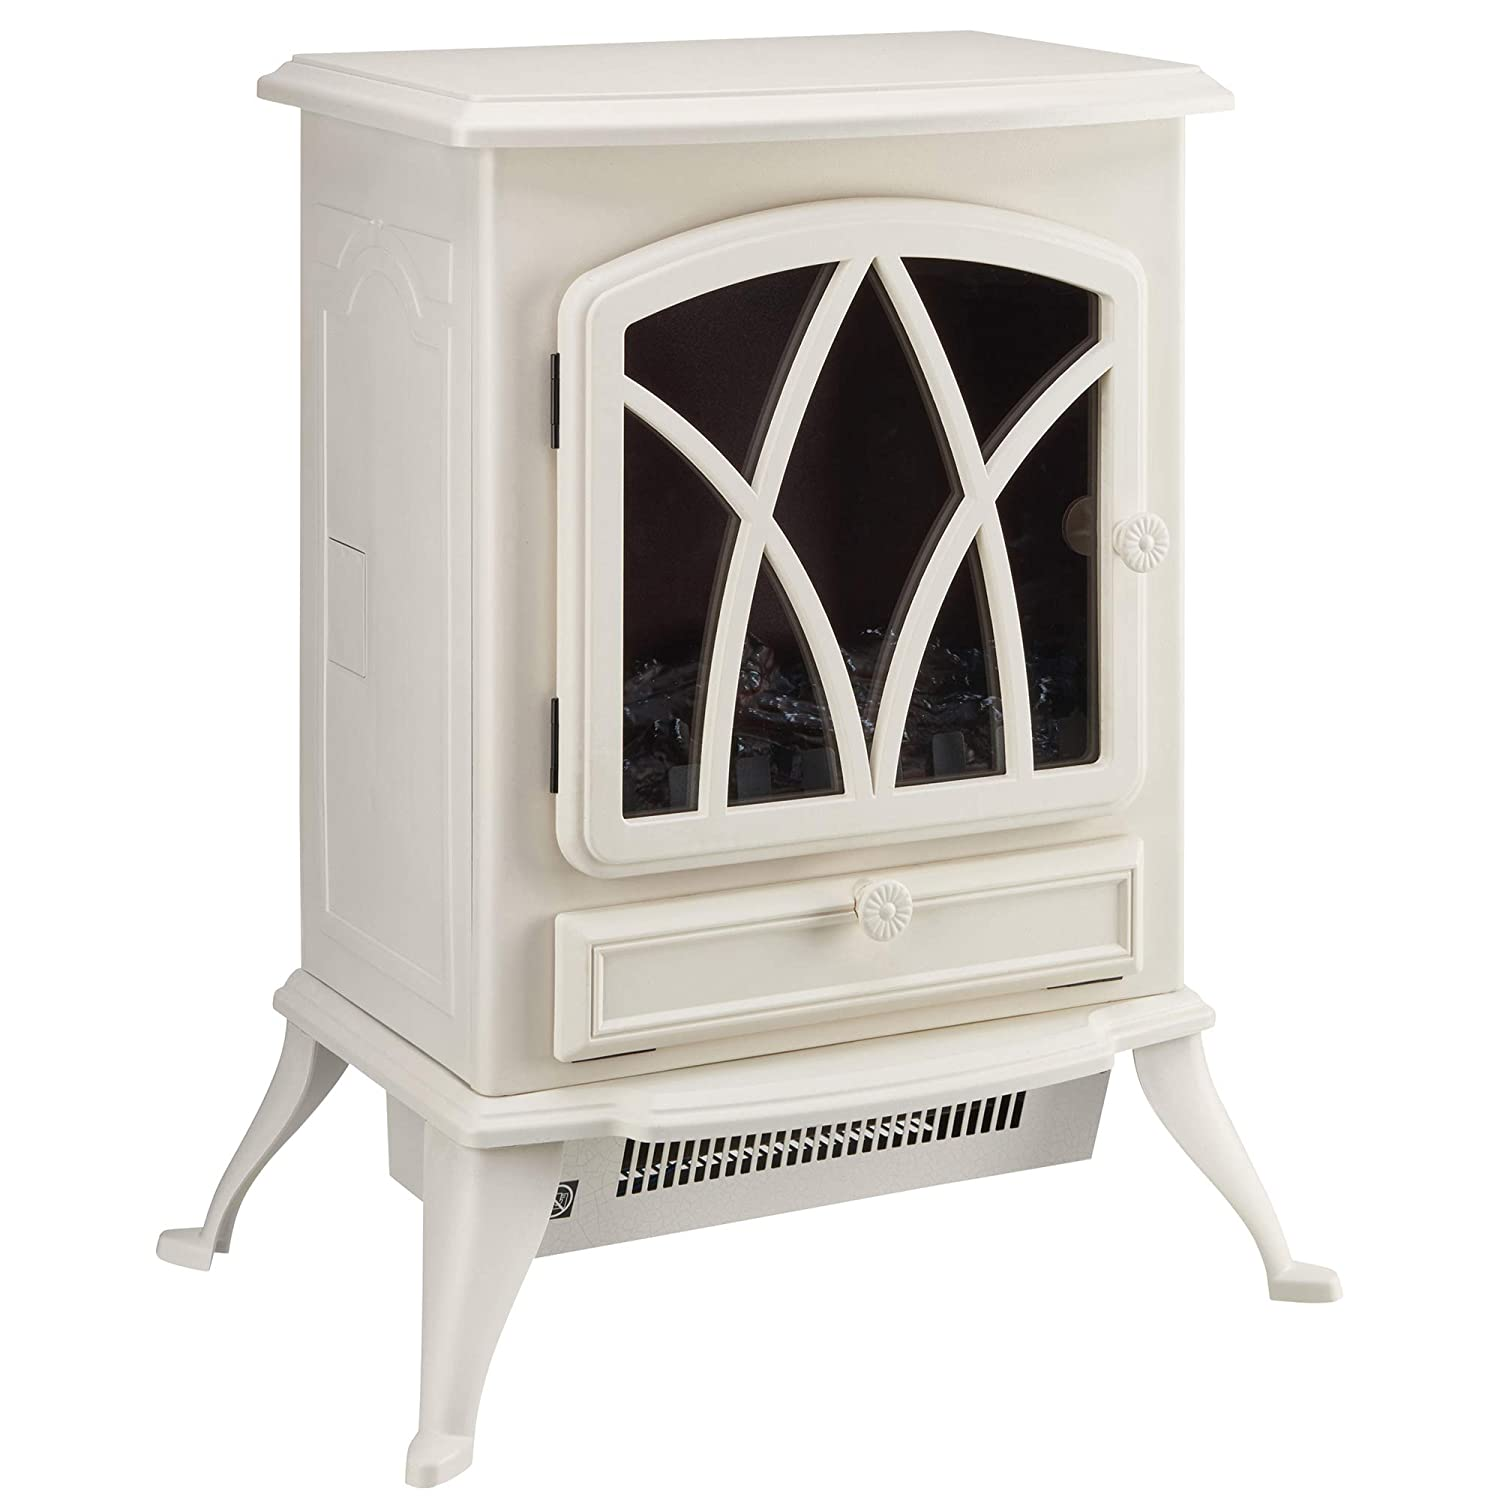 DIY & Tools Electrical Fireplaces Large, Grey Portable ...